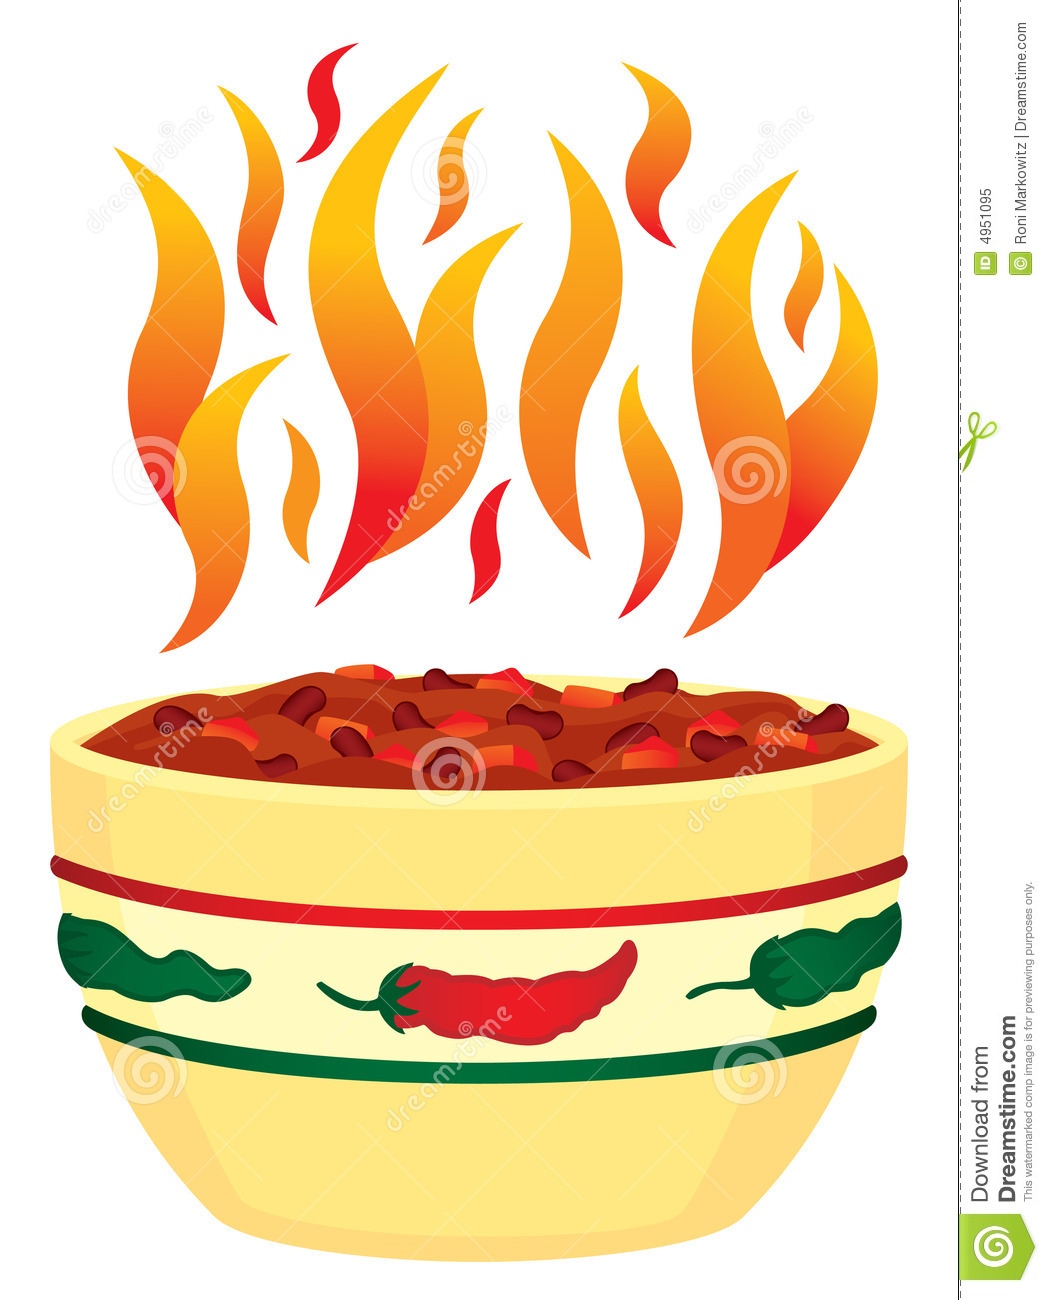 Bowl of chili clipart 4 » Clipart Station.